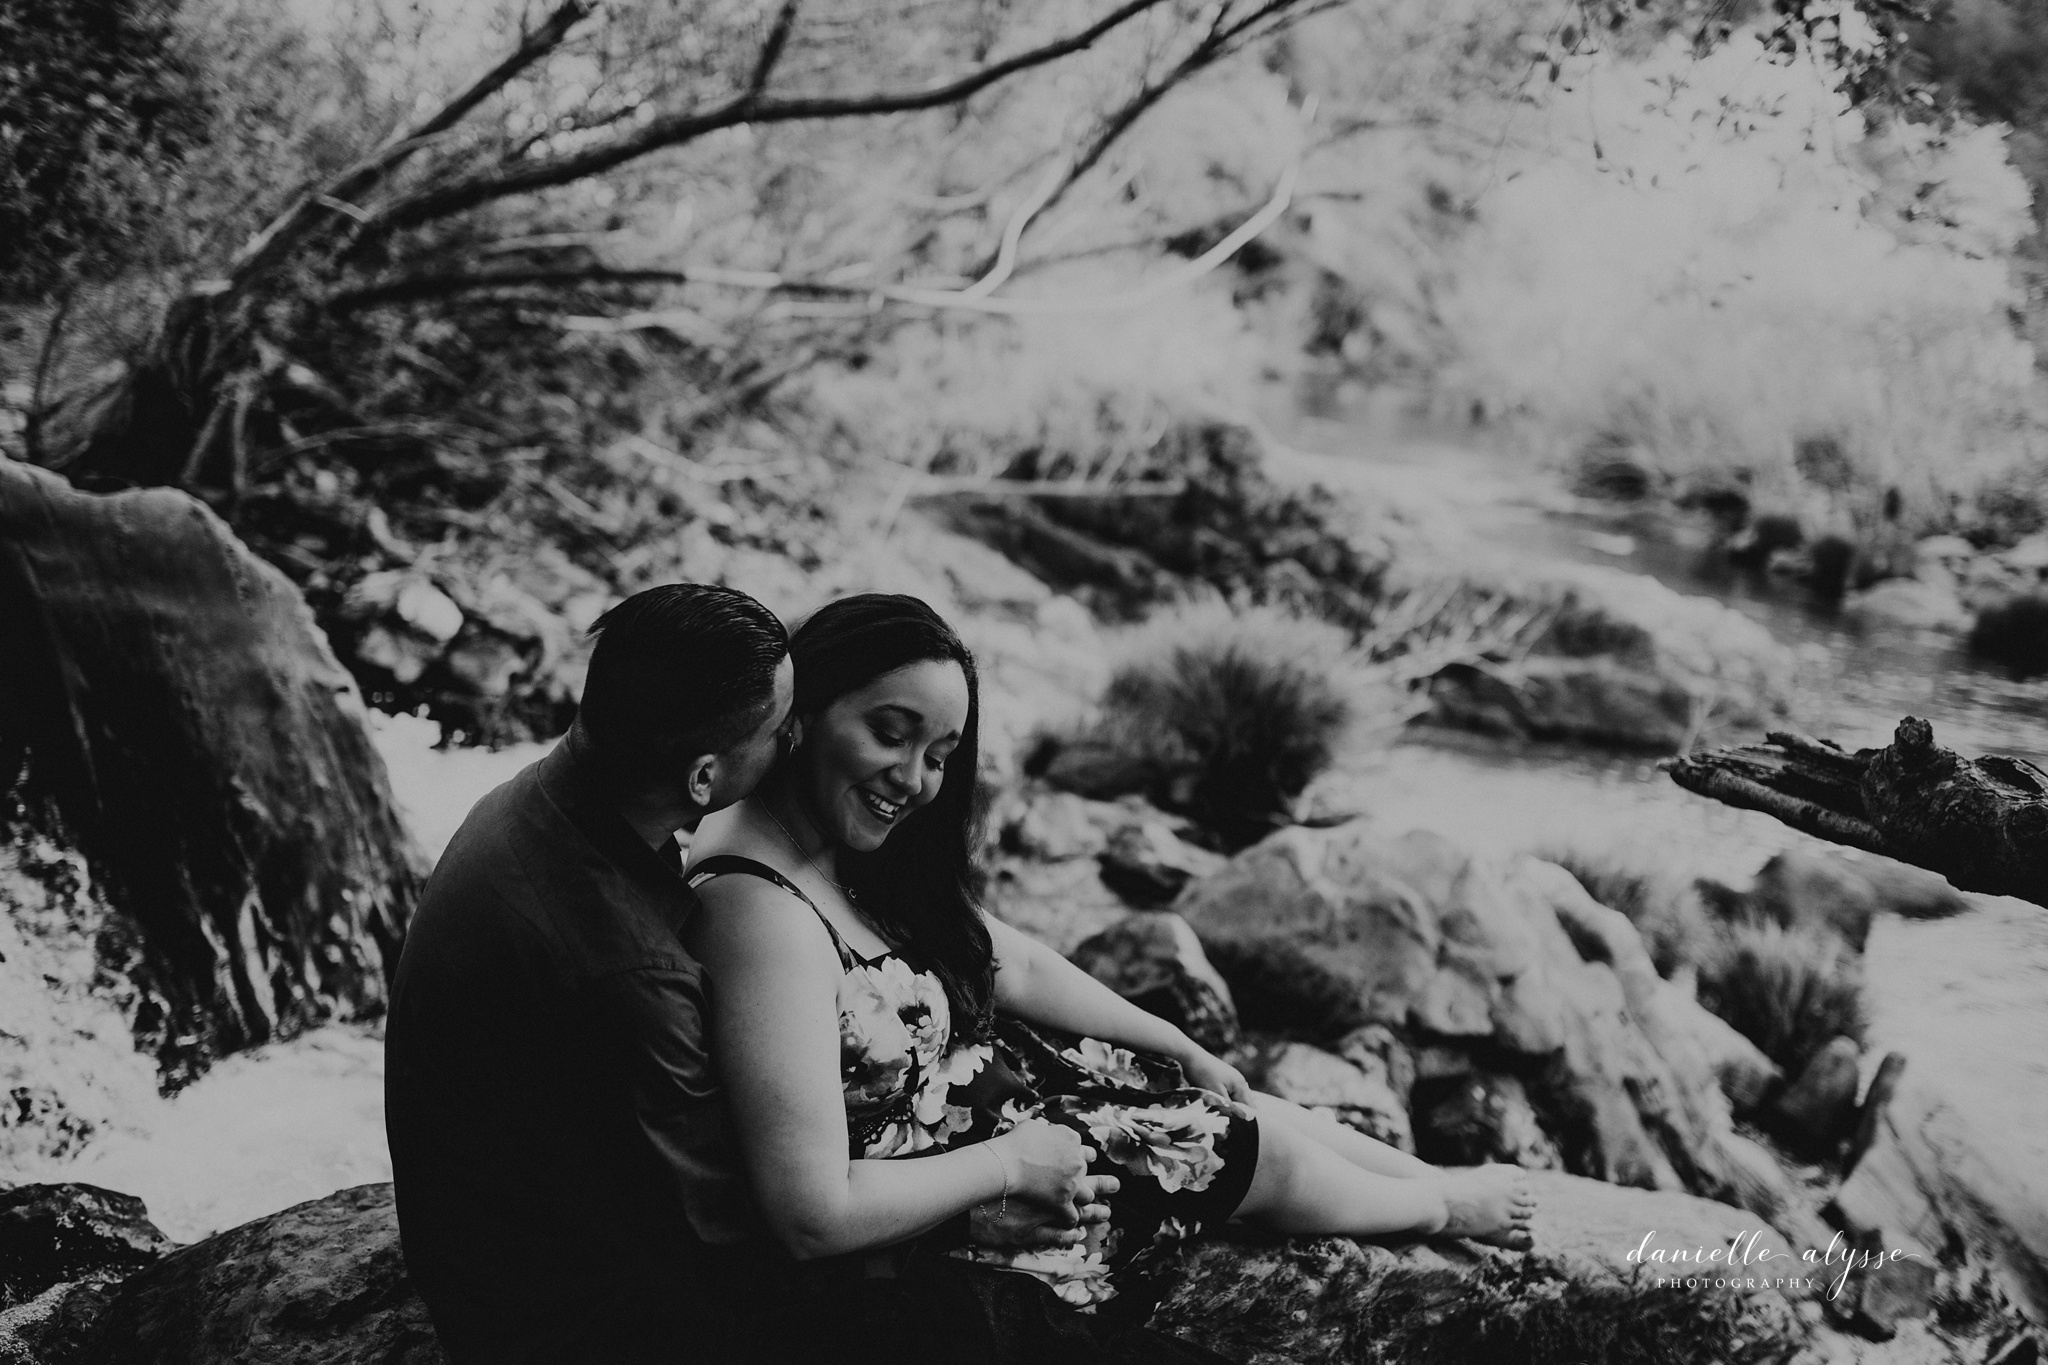 180425_engagement_monica_auburn_water_falls_auburn_danielle_alysse_photography_sacramento_photographer_blog_79_WEB.jpg